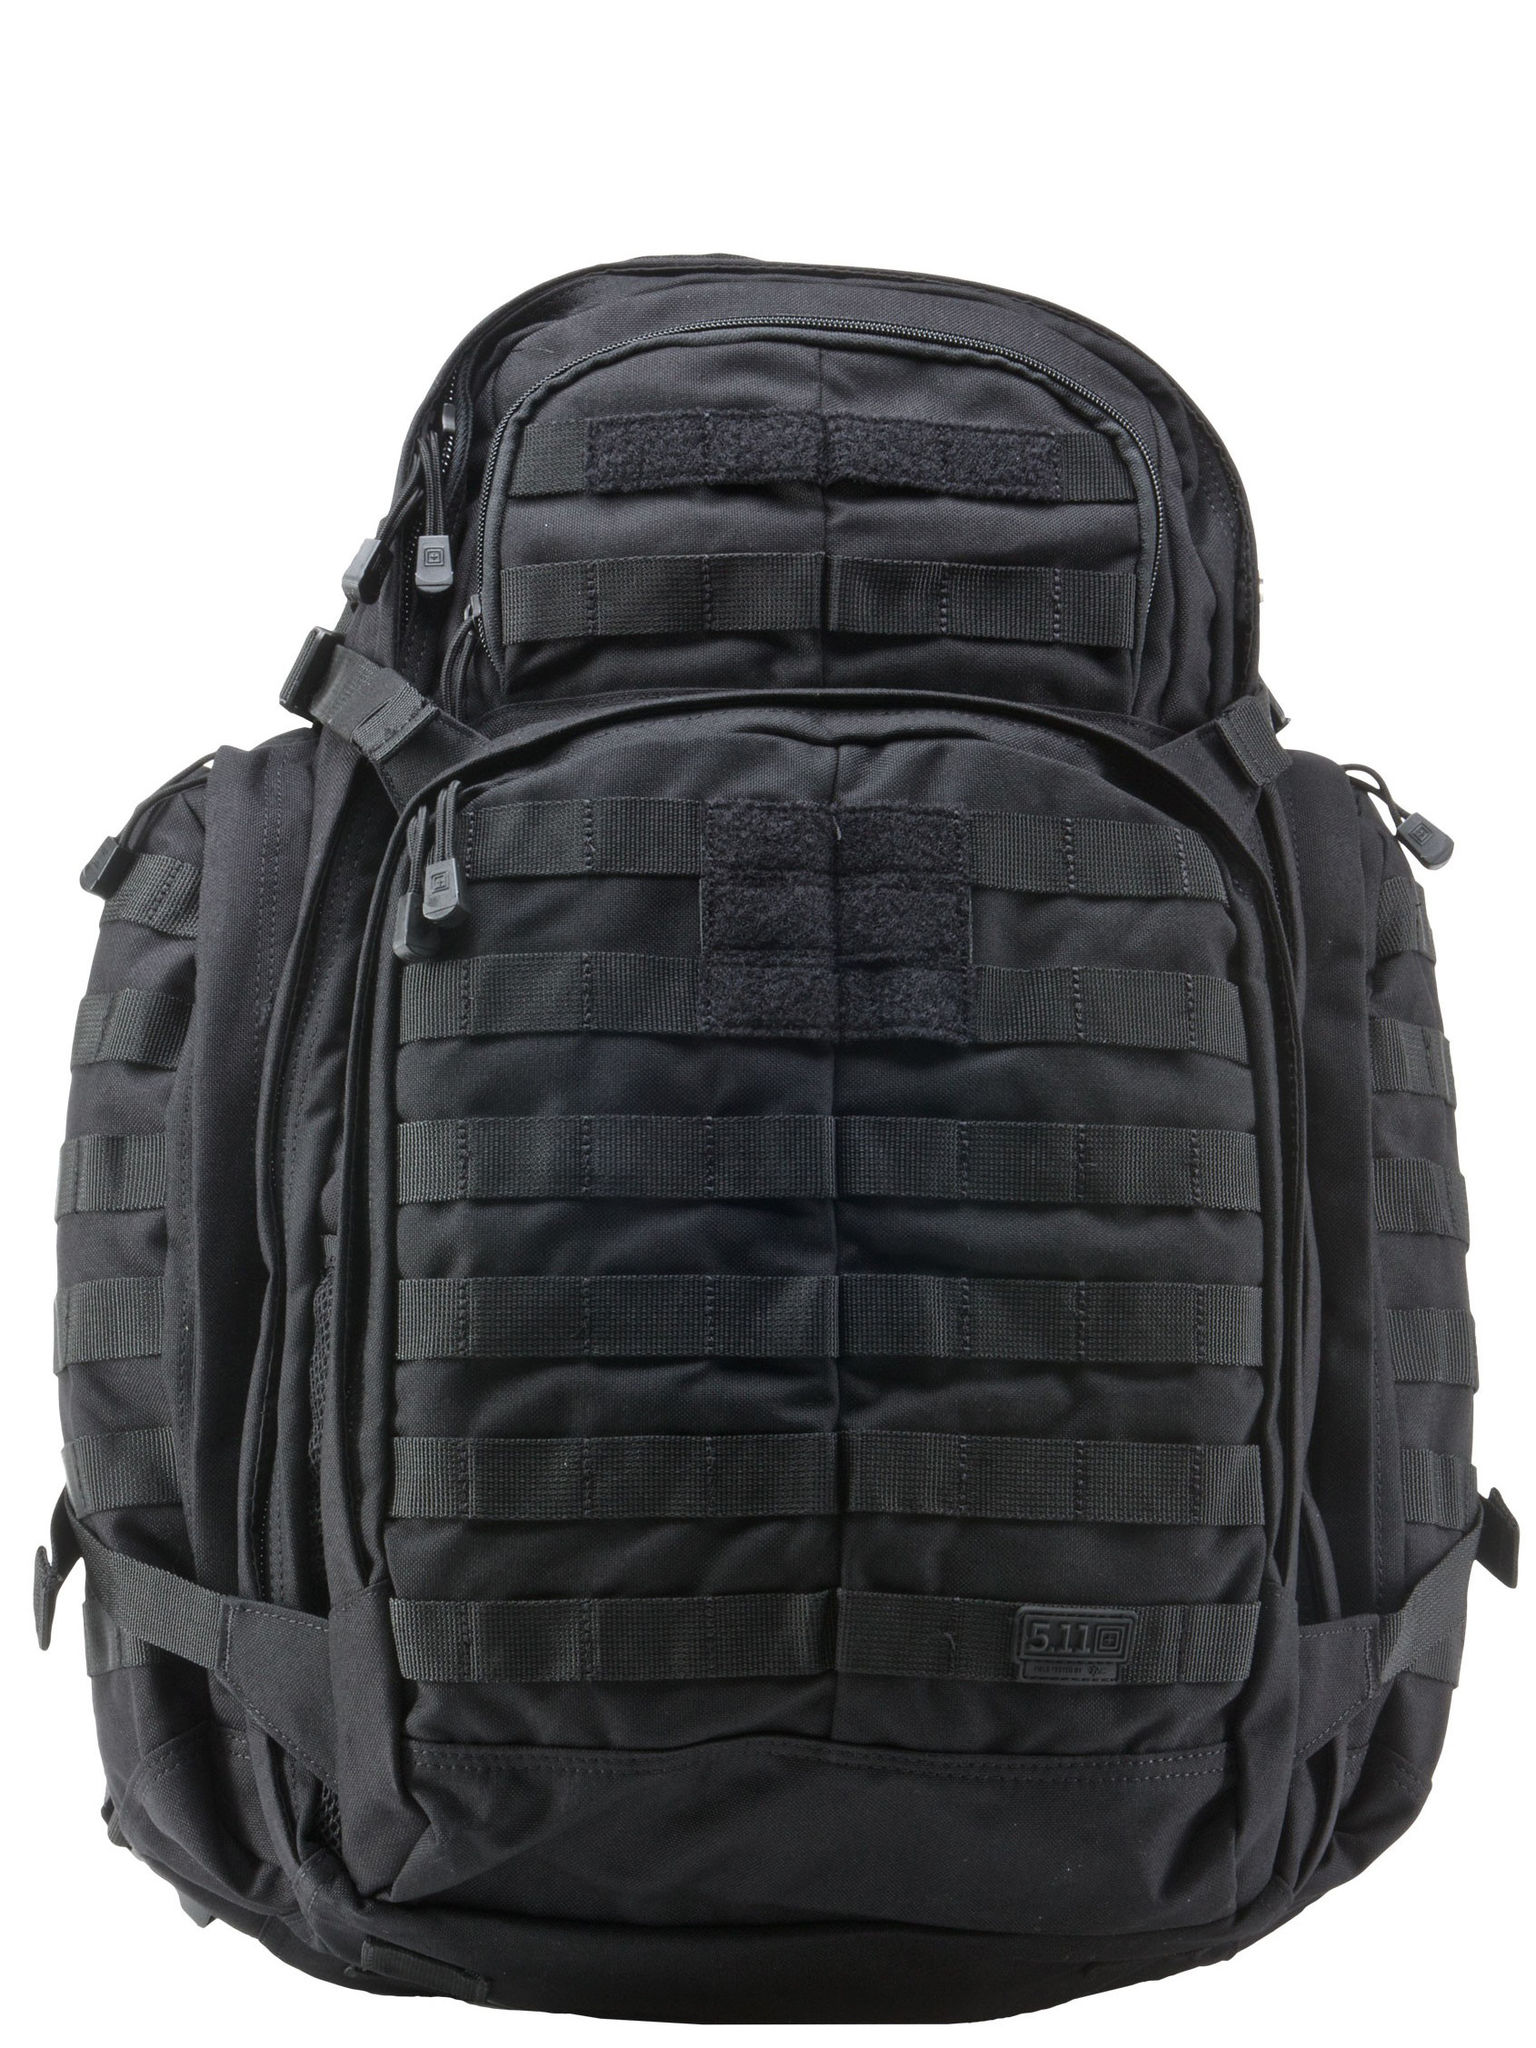 5.11 Tactical Rush 72 Backpack (L) Black